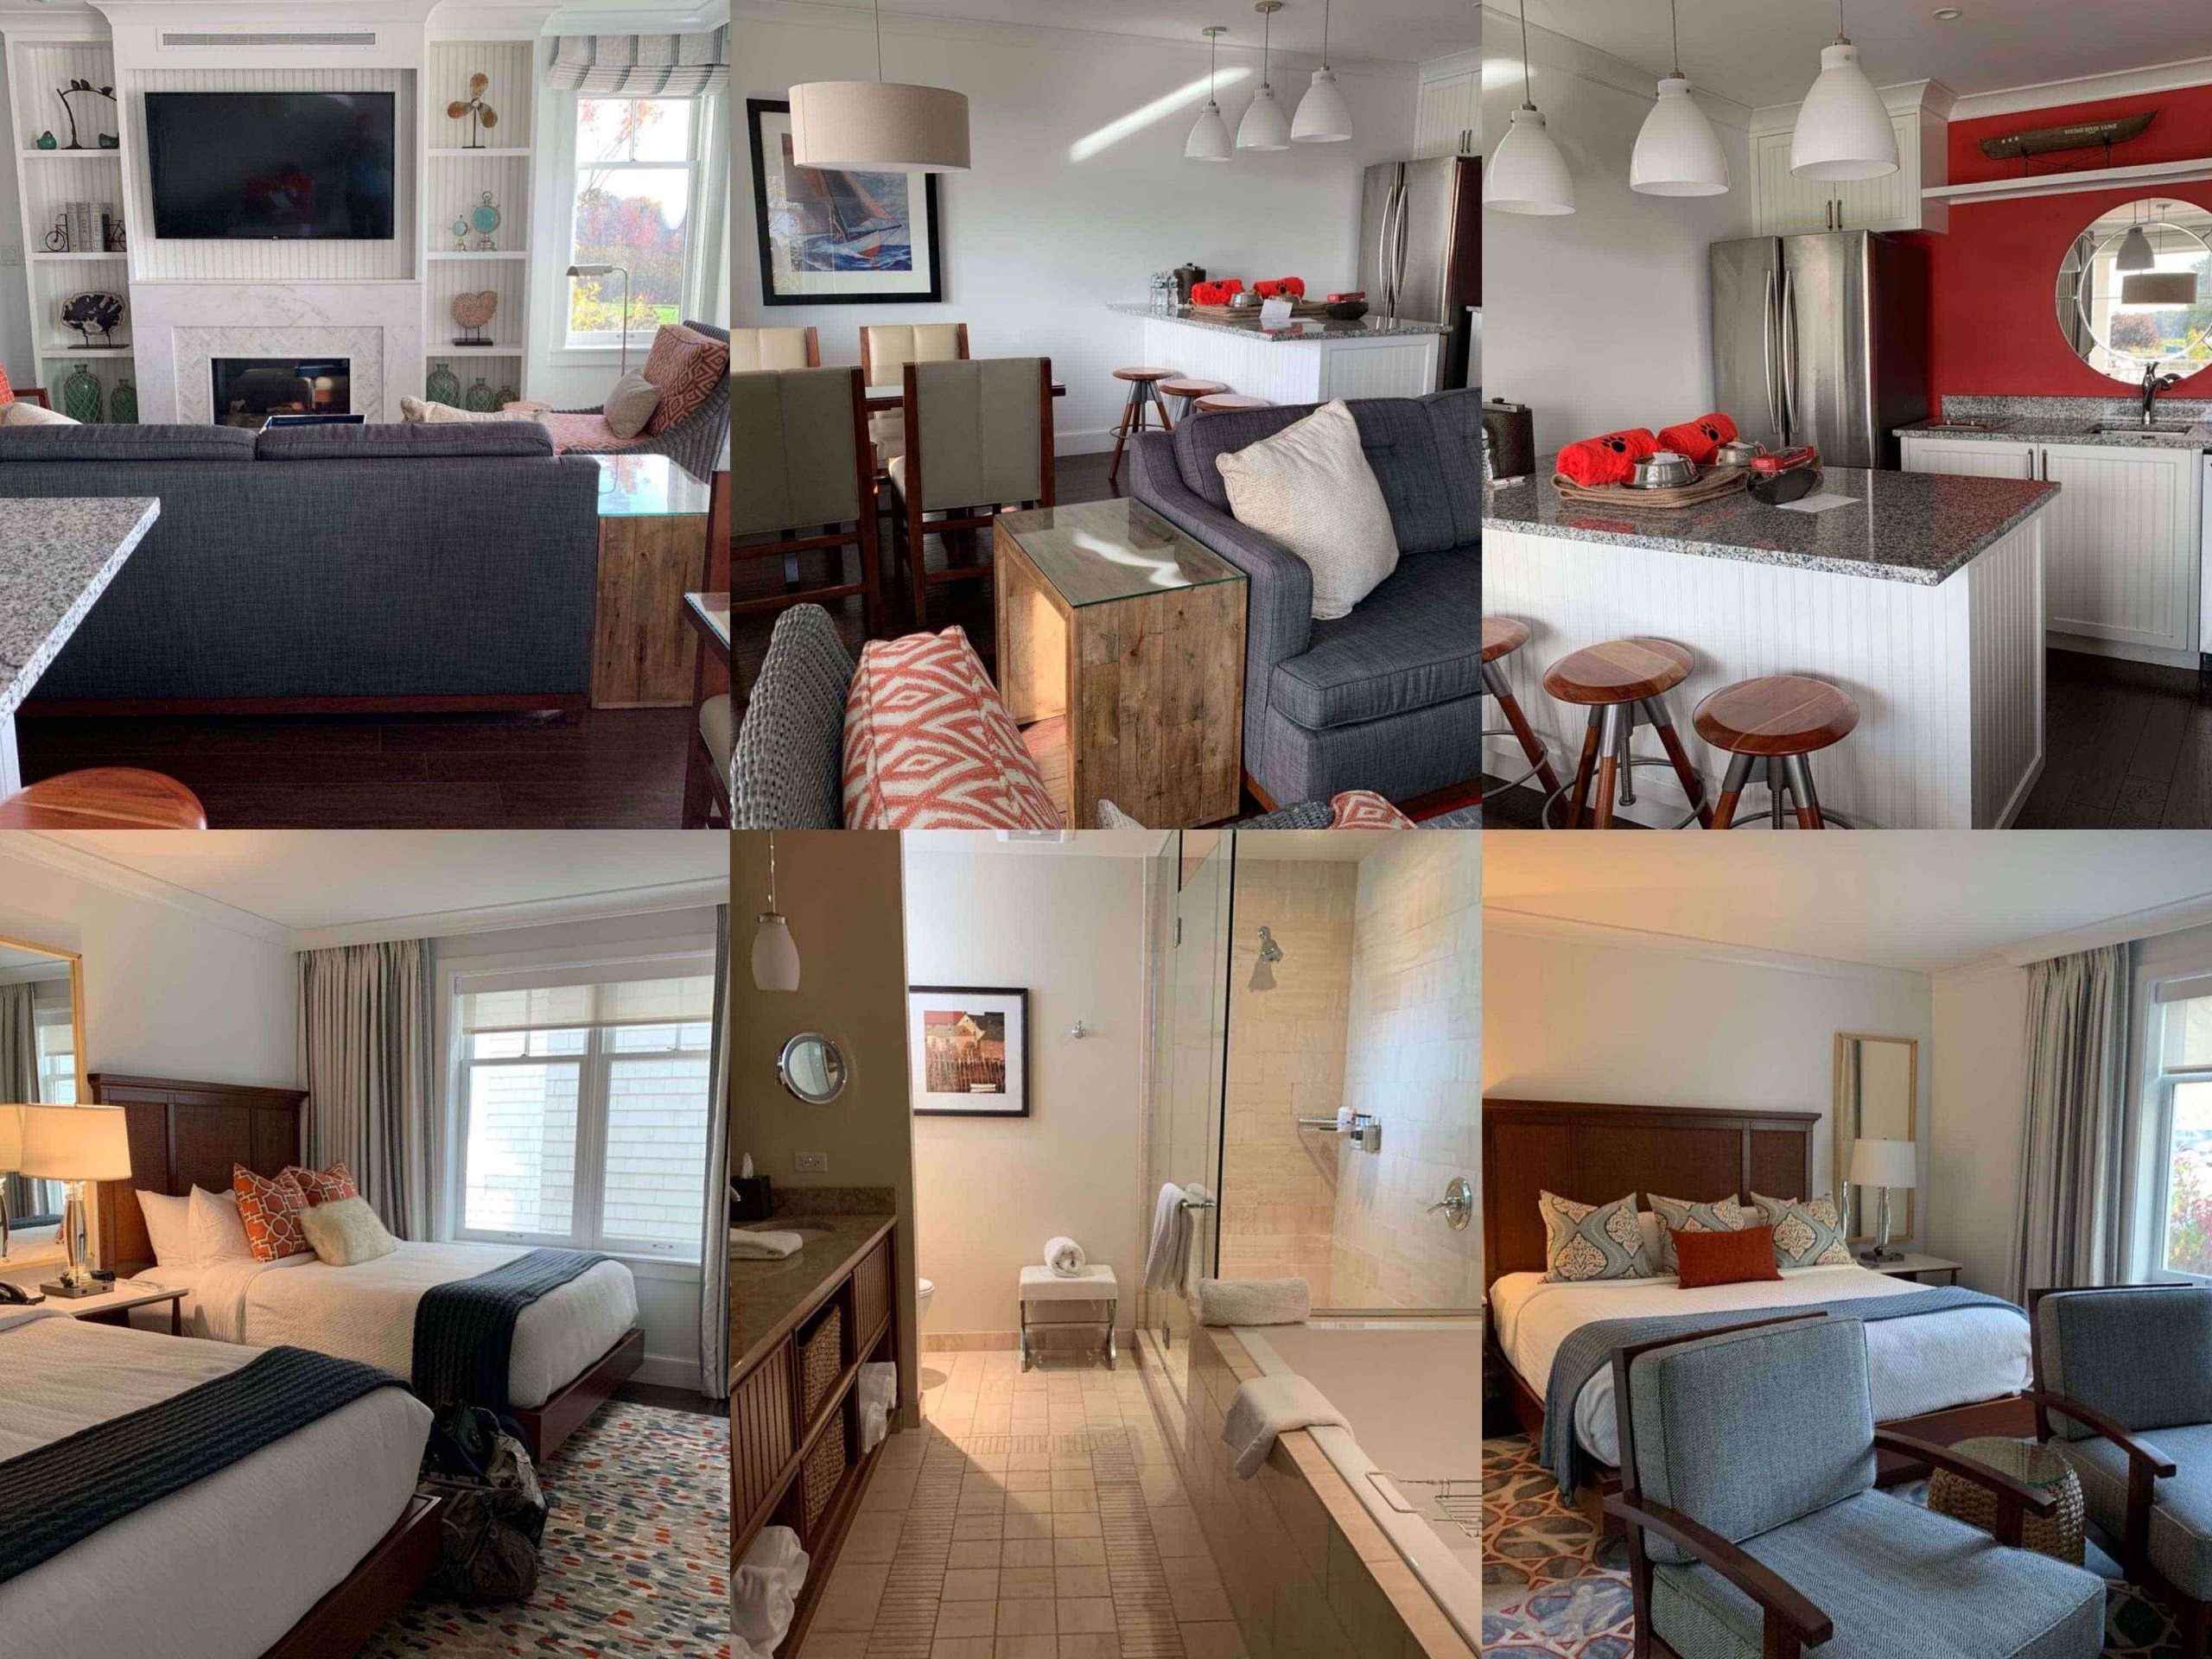 collage with pictures of a Cove Suite at the Inn by the Sea